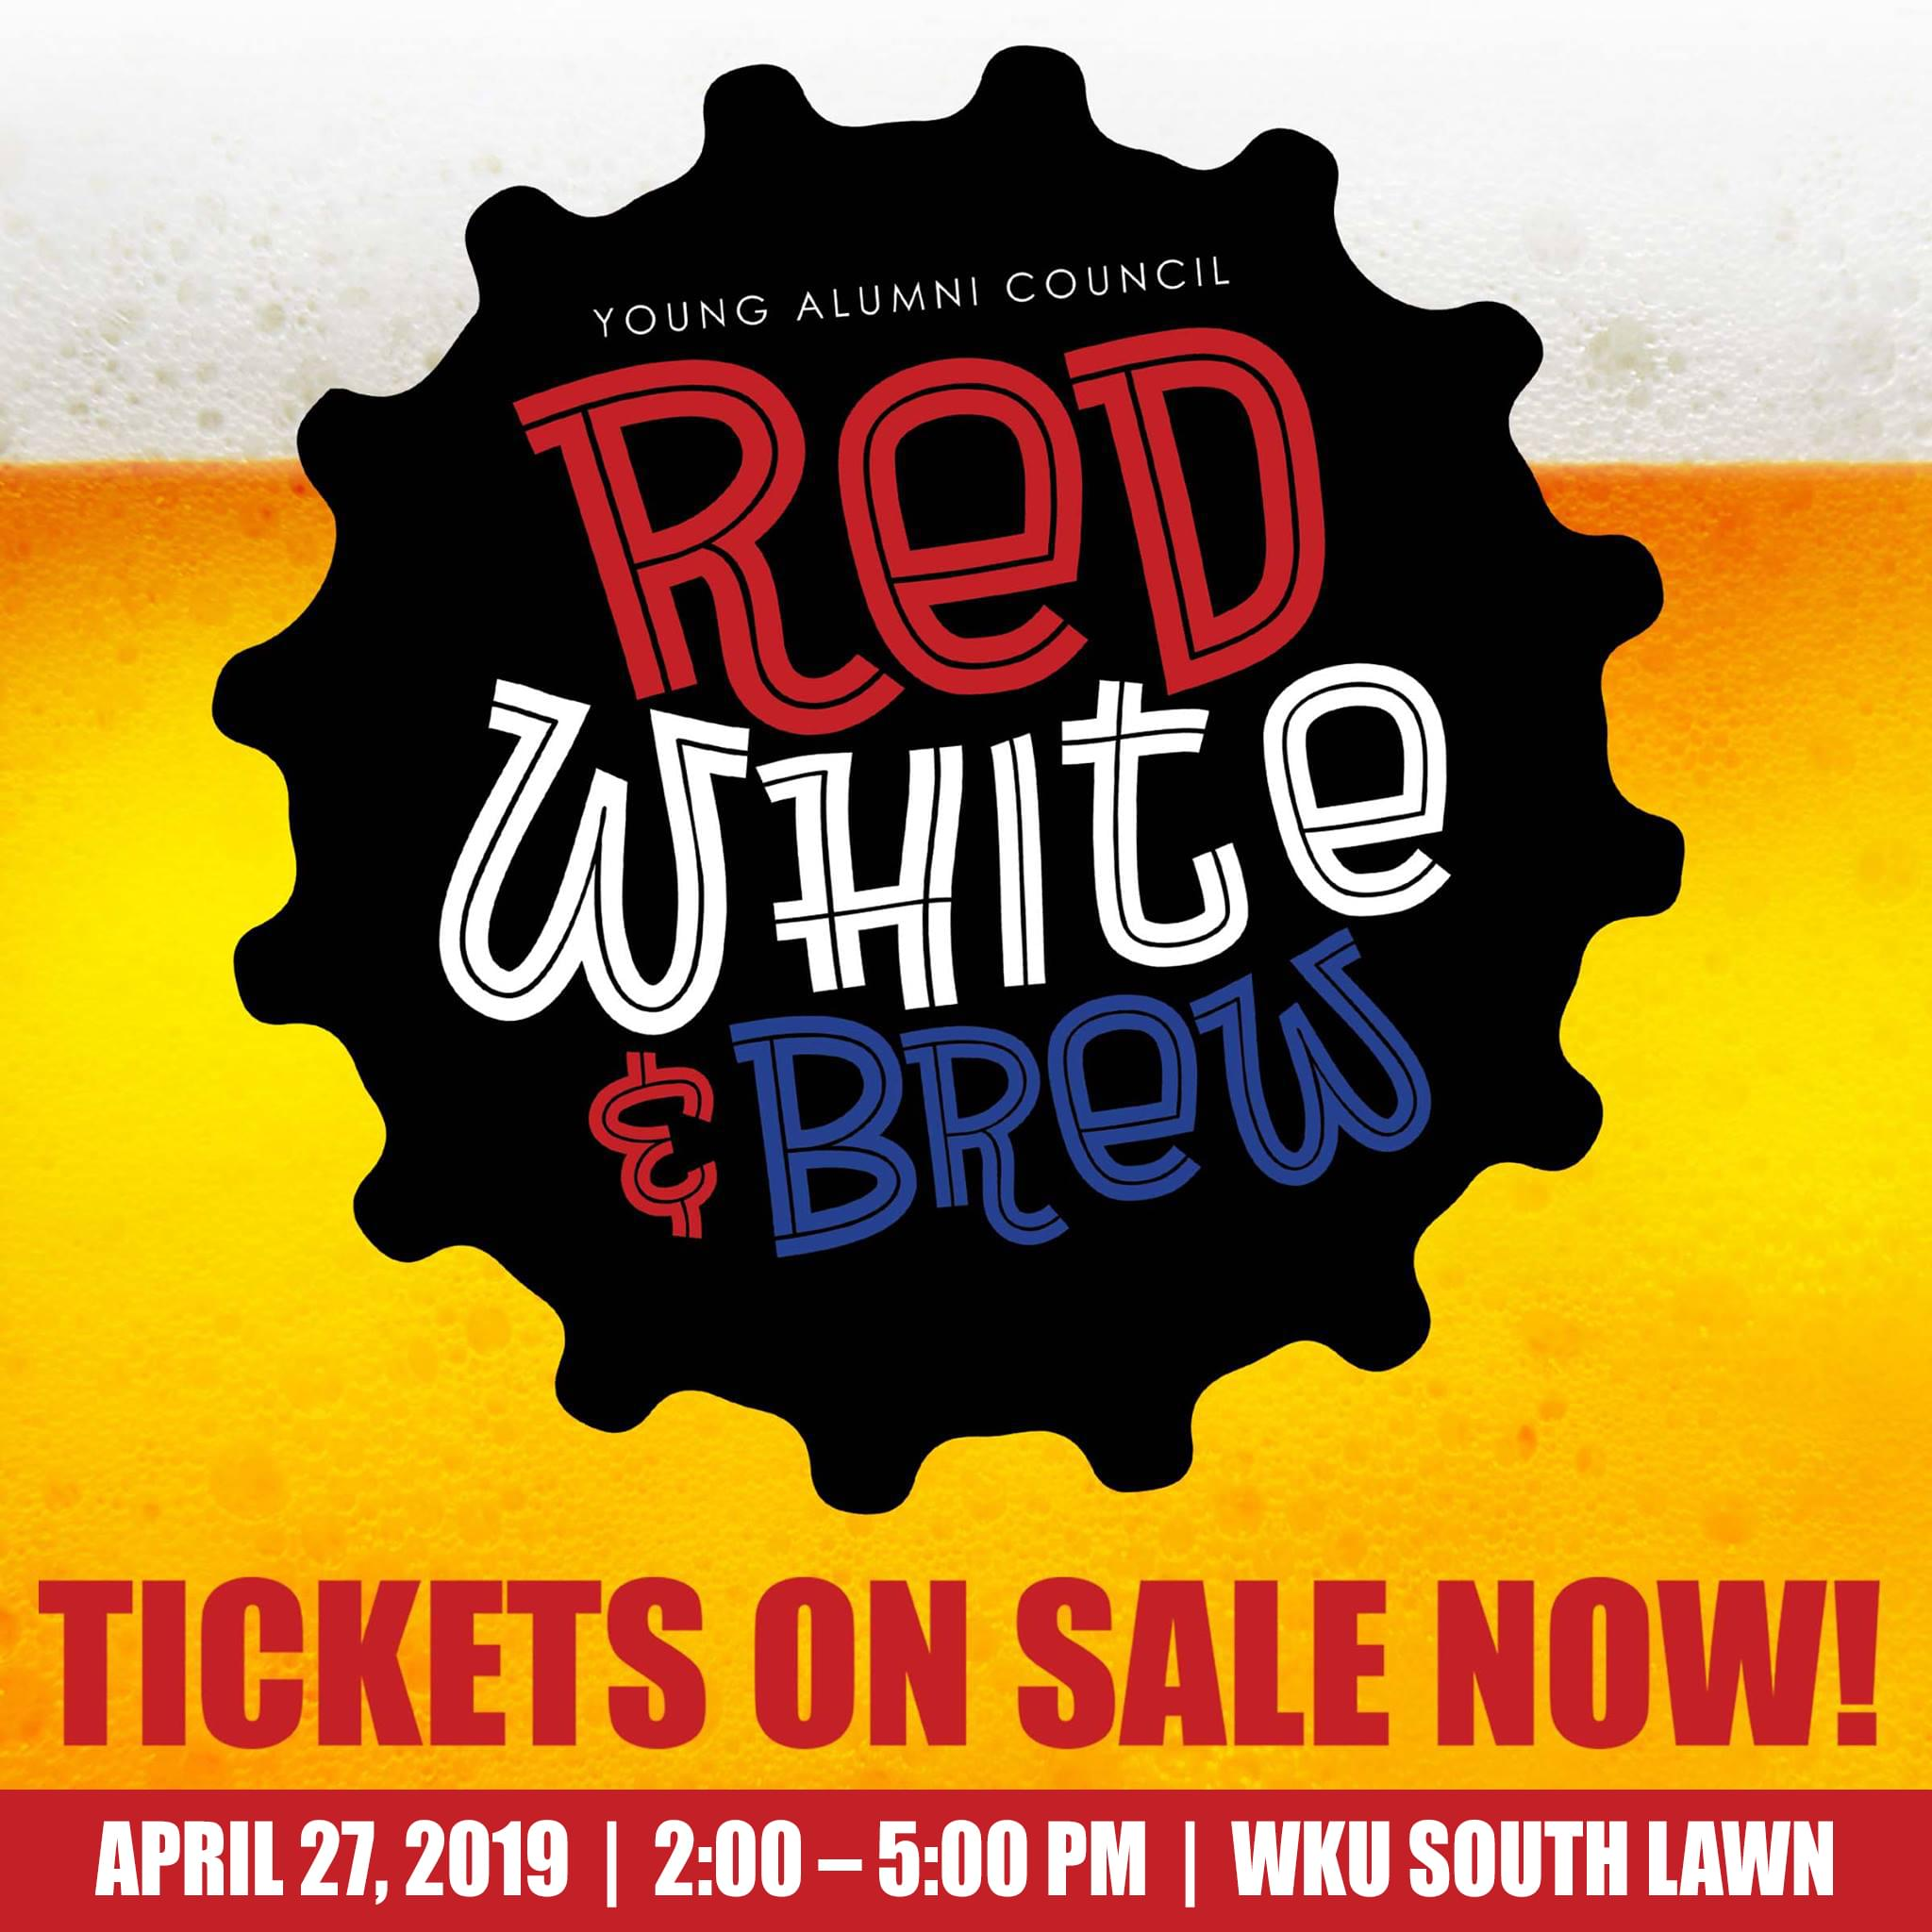 Red, White & Brew is Saturday